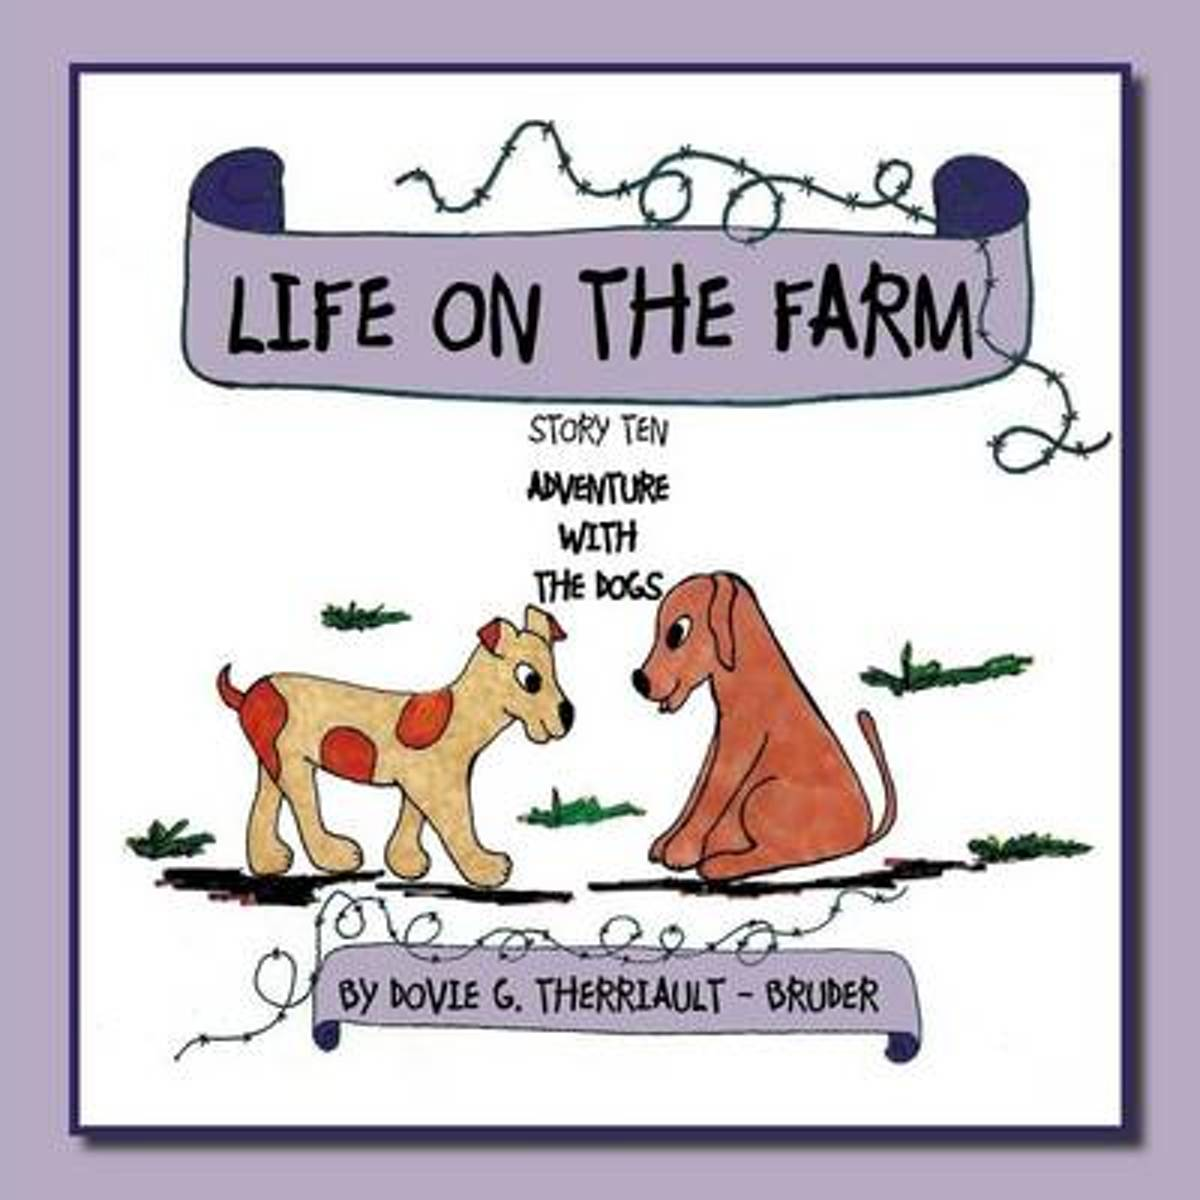 Life on the Farm - Adventure with the Dogs